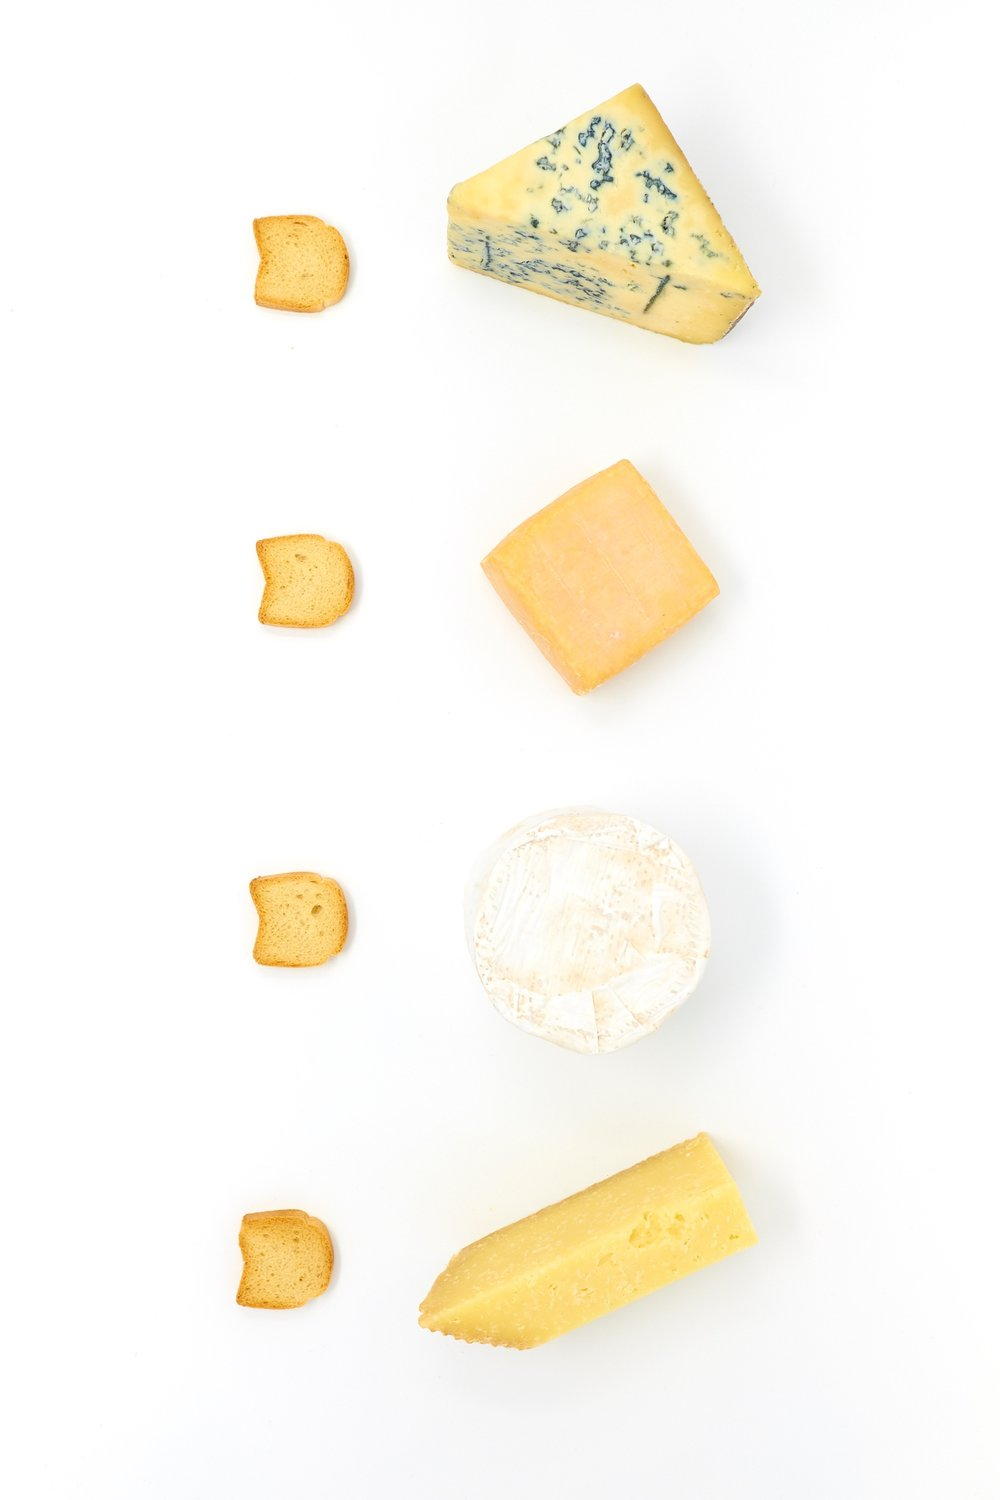 wednesdays @ 5:30pm - Cheese Talk & TastingHead out to the farm and learn about the cheese making process from udder to table. Enjoy watching our cows being milked and hear about what it takes to turn that milk into cheese. You will then taste your way through a selection of all of our cheeses. B.Y.O.B. if you like.25$ per person1.5 hours.No advance registration needed. Meet at farmstand.